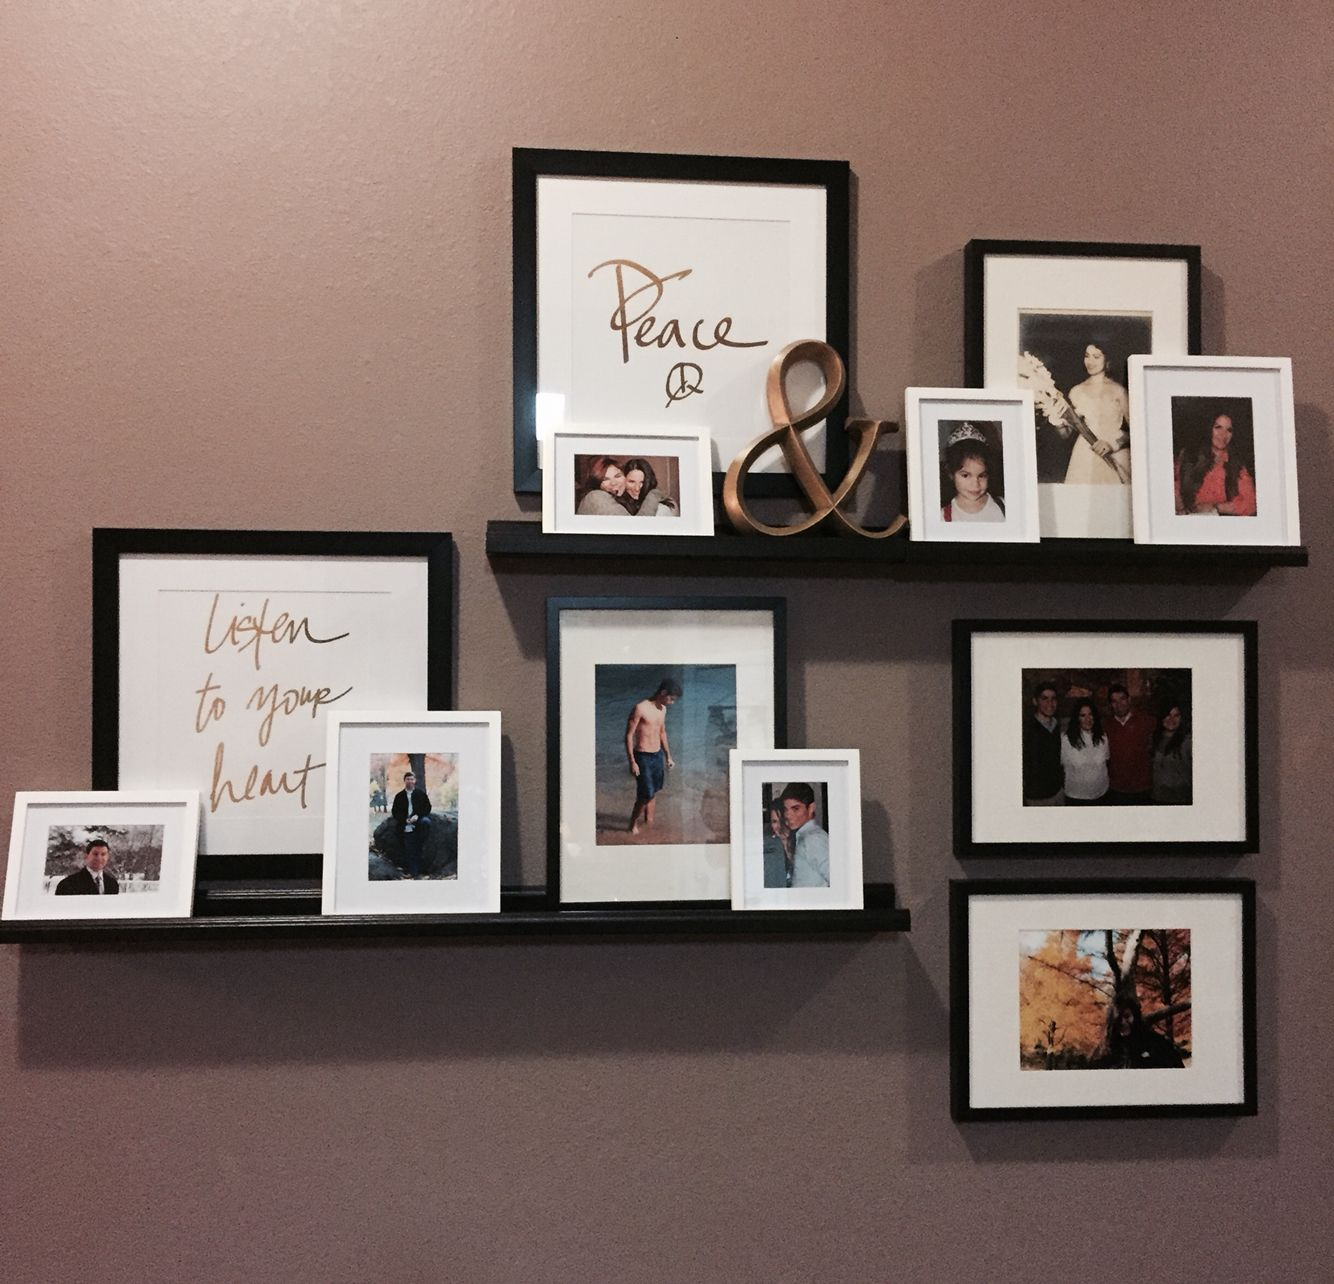 Photo wall under construction